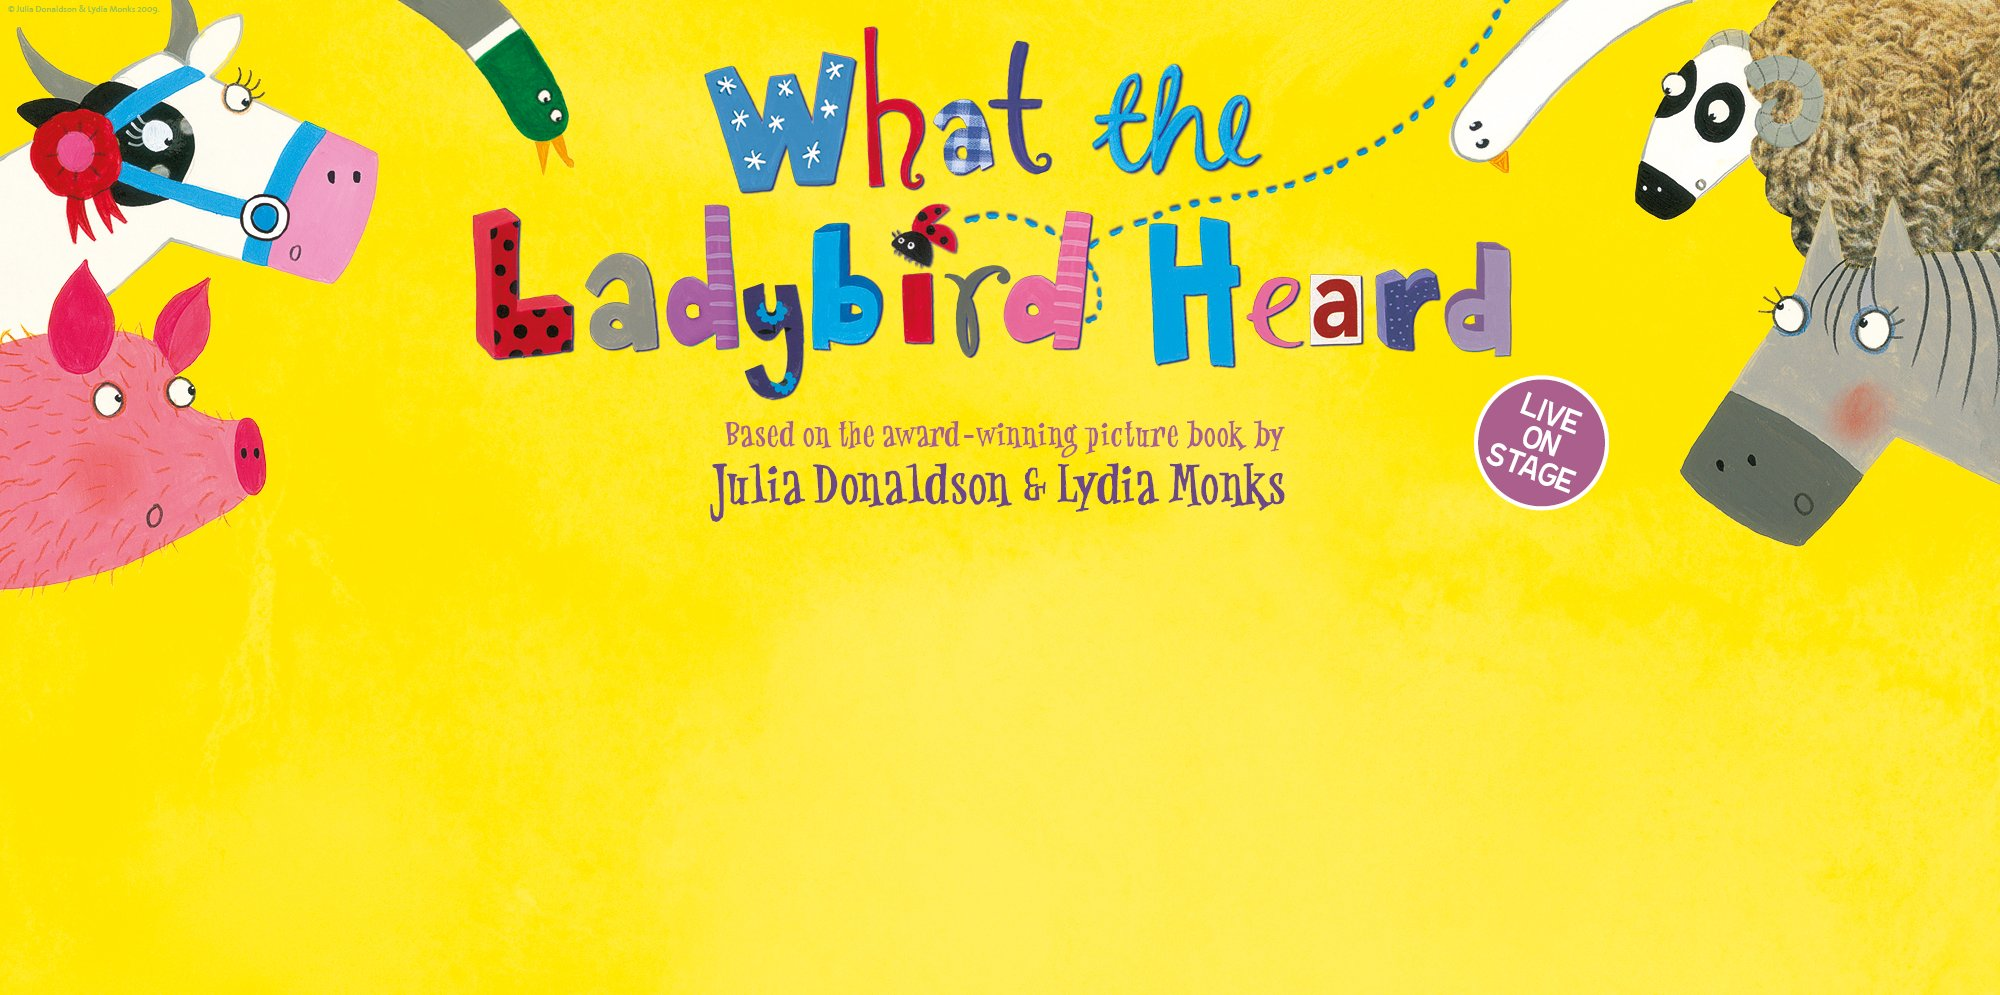 Text says What the Lady Bird Heard based on the award-winning picture book by Julia Donaldson & Lydia Monks, the text is surrounded by farm yard animals